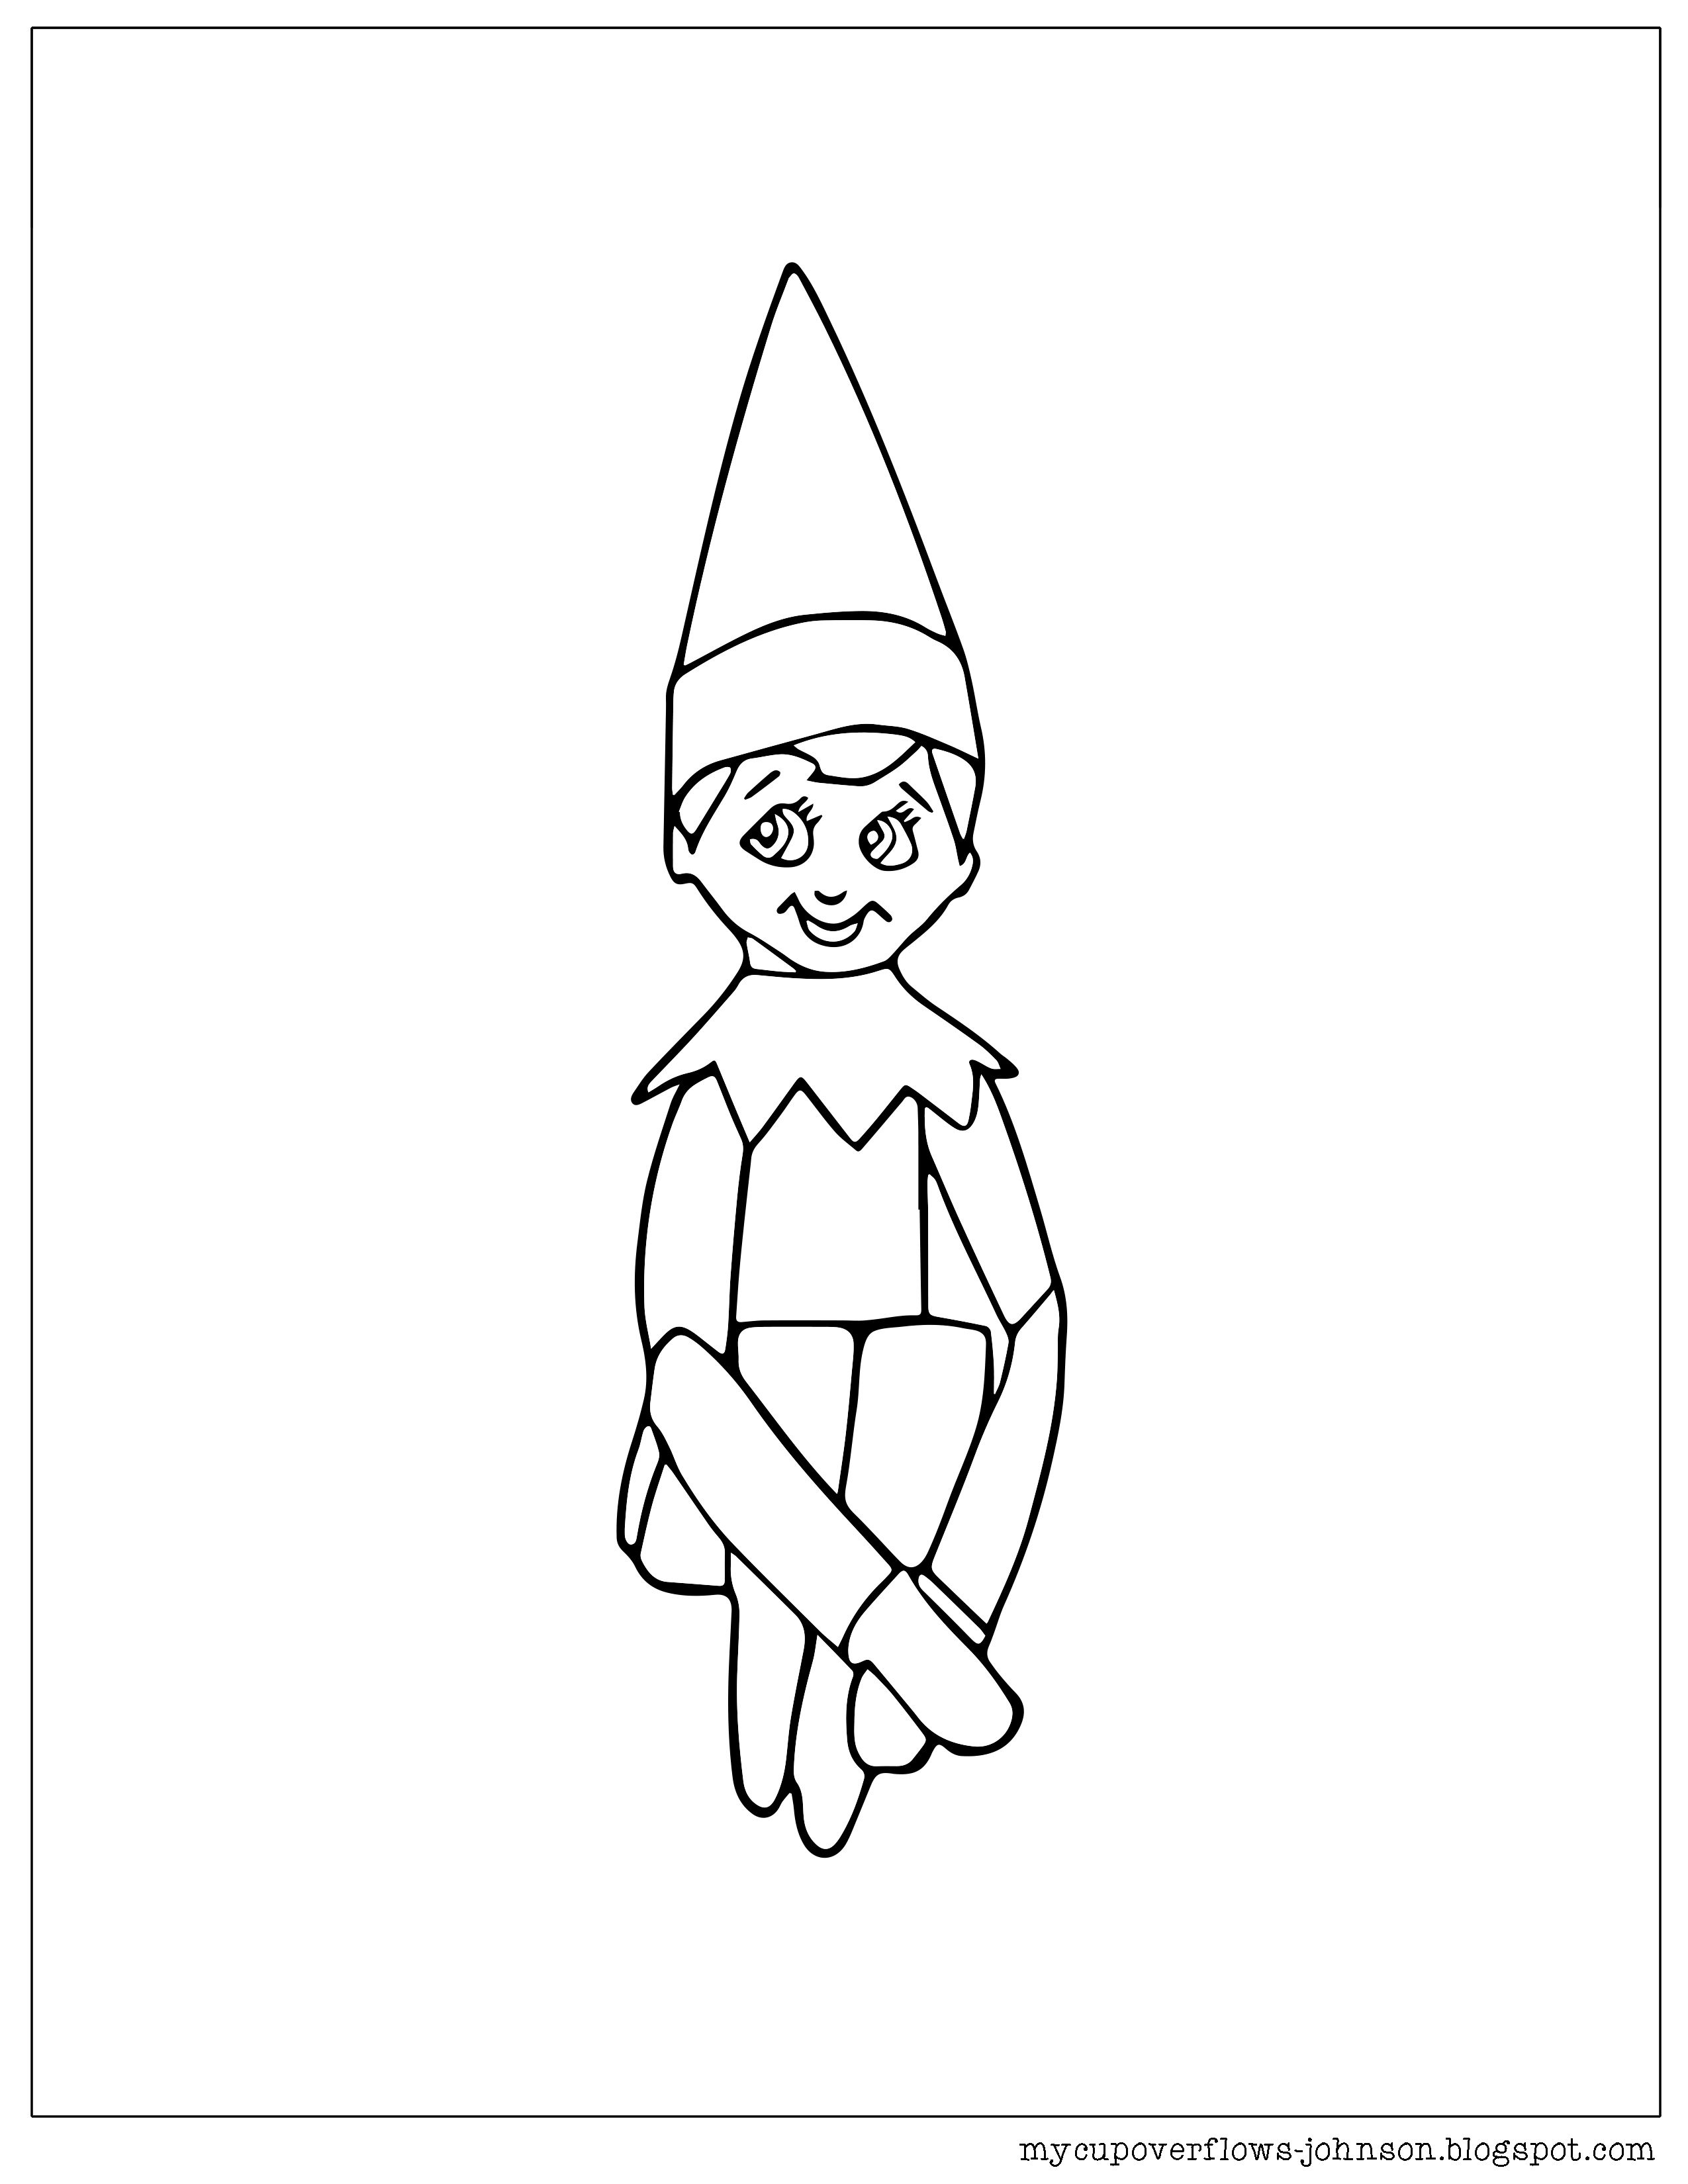 Elf On The Shelf Coloring Page Dinosaur Coloring Pages Coloring Pages Elf On The Shelf